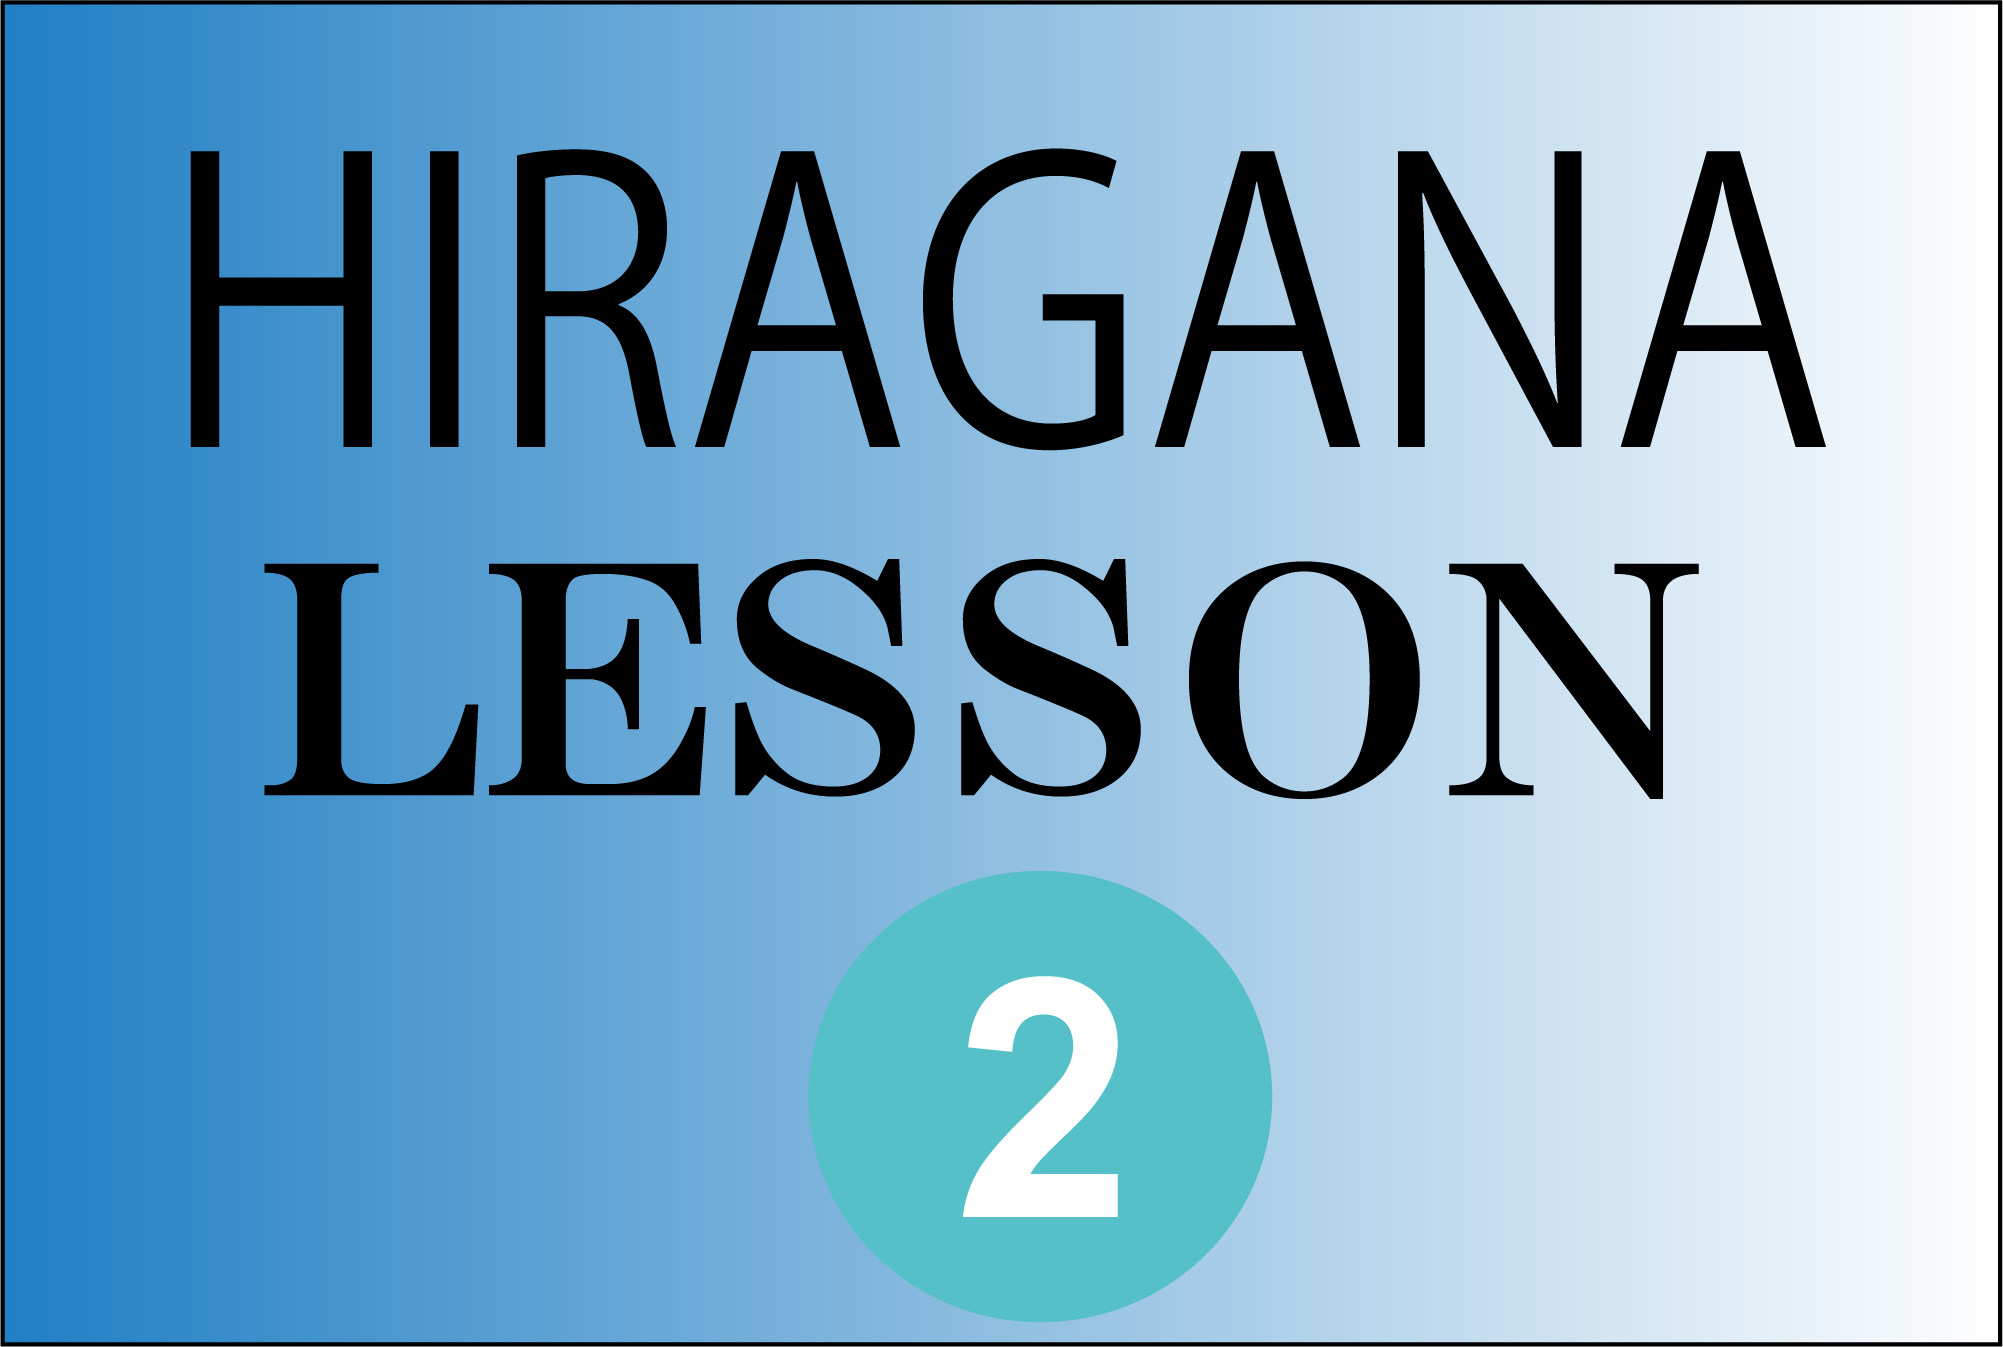 How to remember HIRAGANA